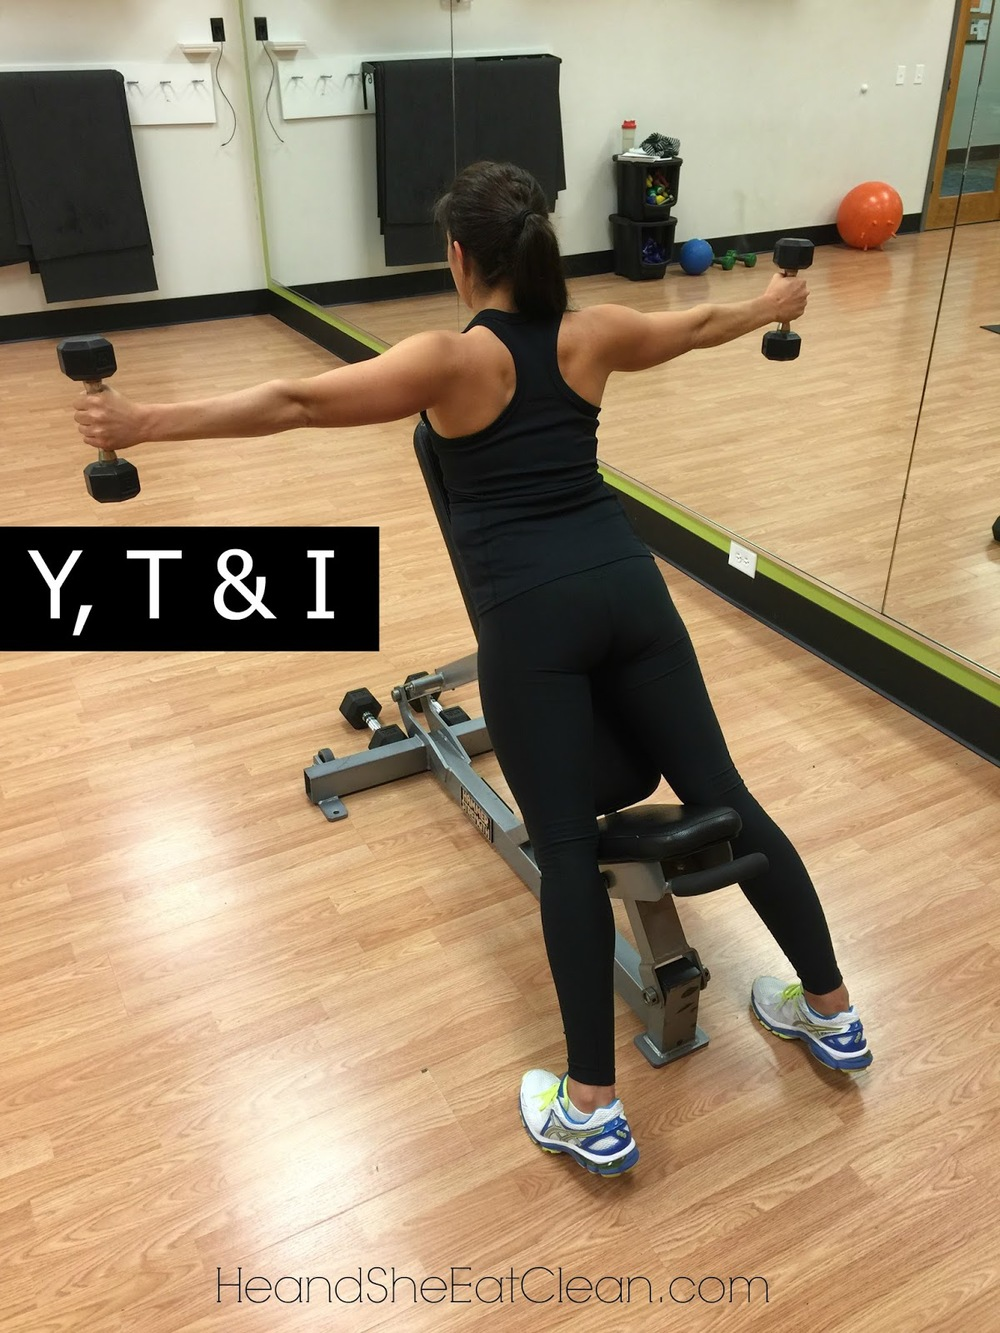 Y, T & I Shoulder Exercise | He and She Eat Clean